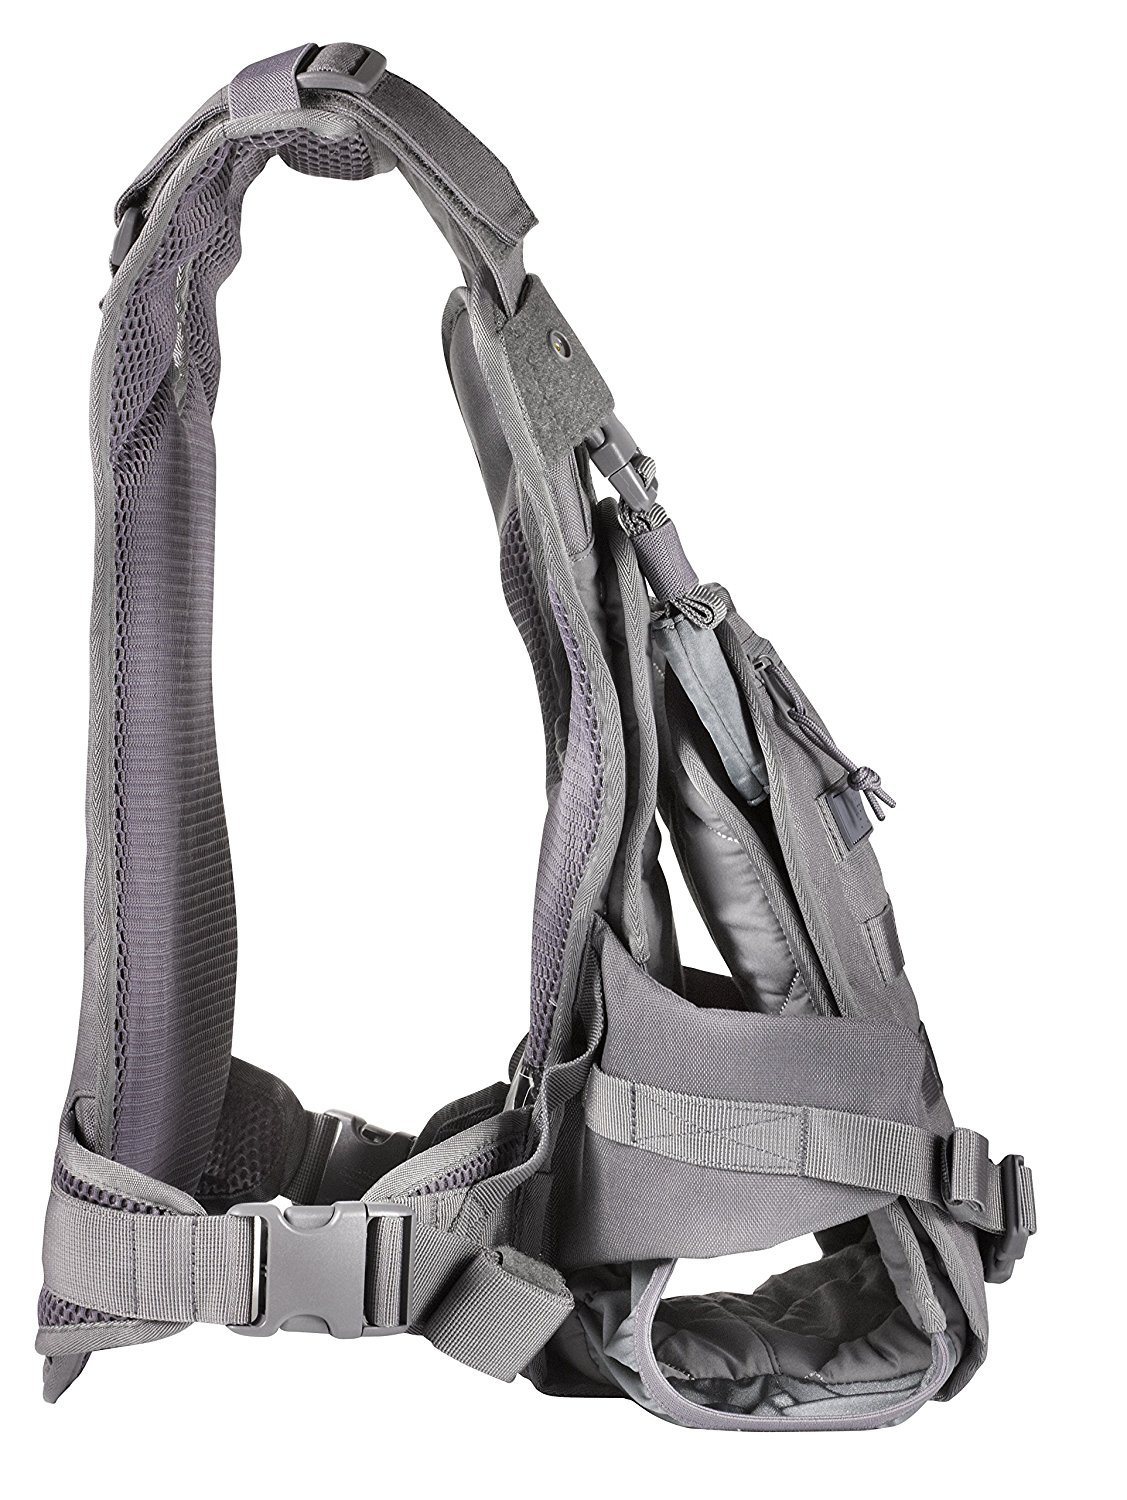 Infant Carrier Military Mission Critical Tactical Front Baby Carrier And Similar Items